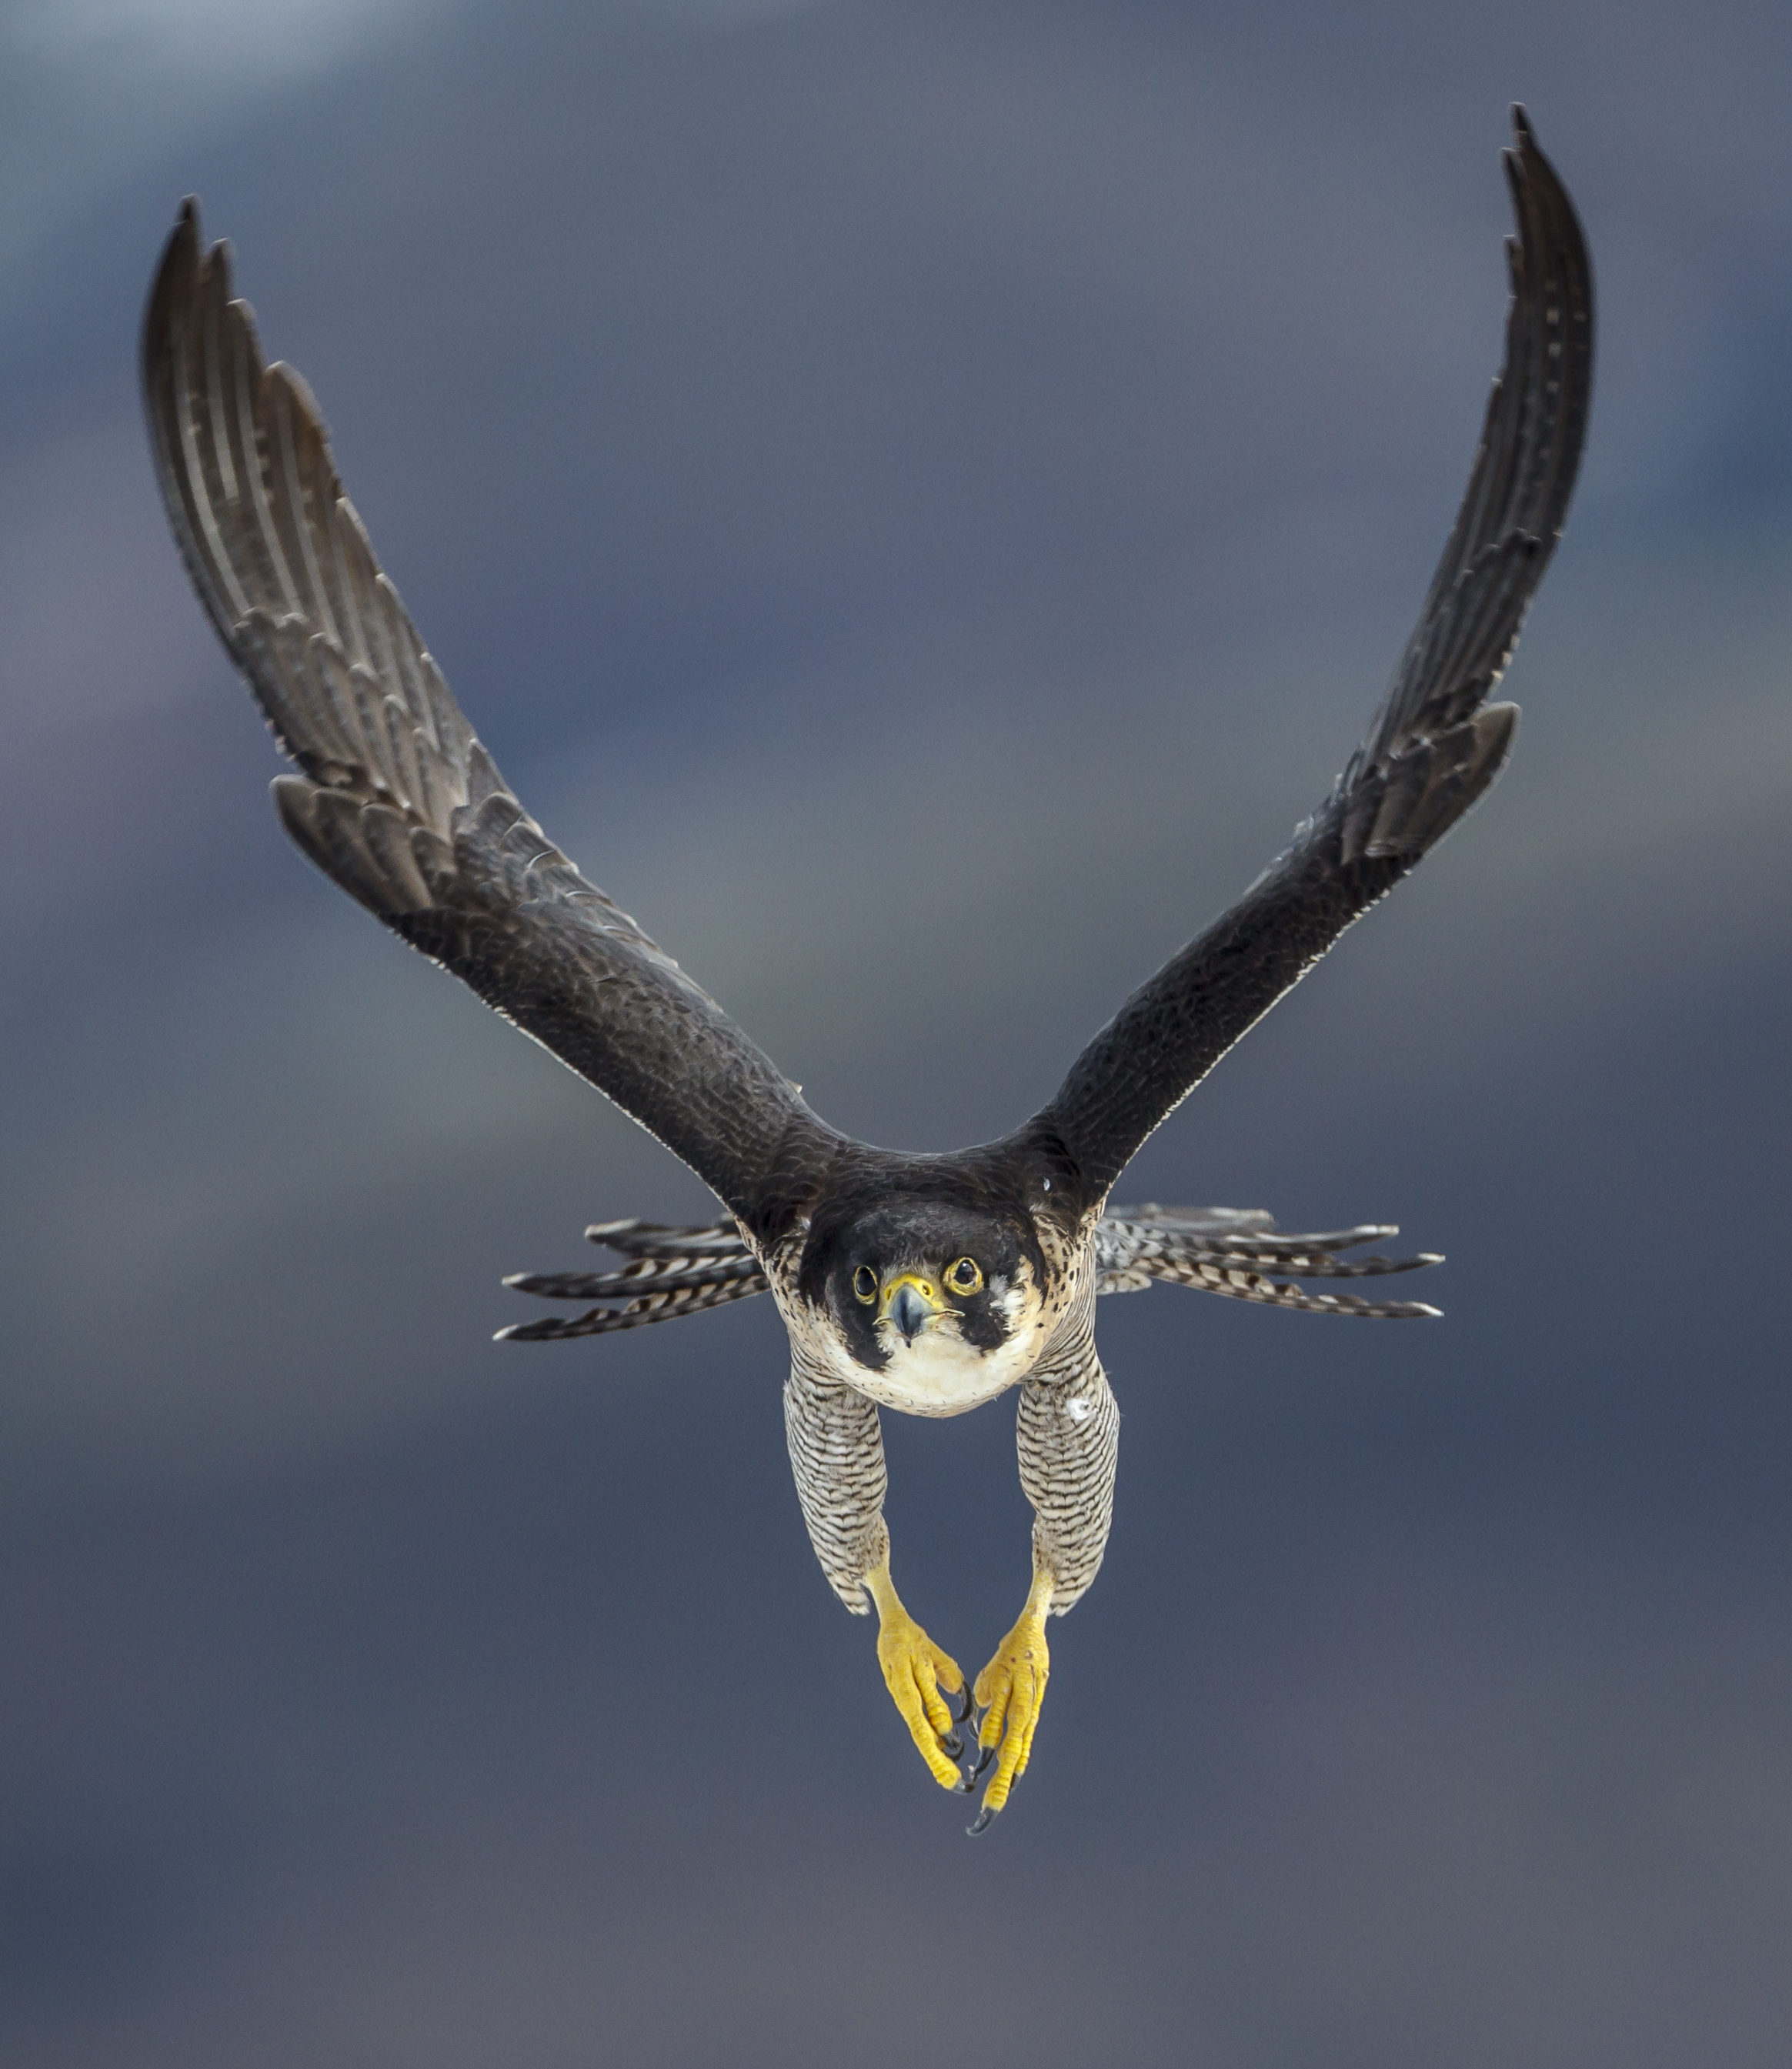 A peregrine falcon in flight frontal flies the mountains of the Cantabrian coast in Spain in search of prey